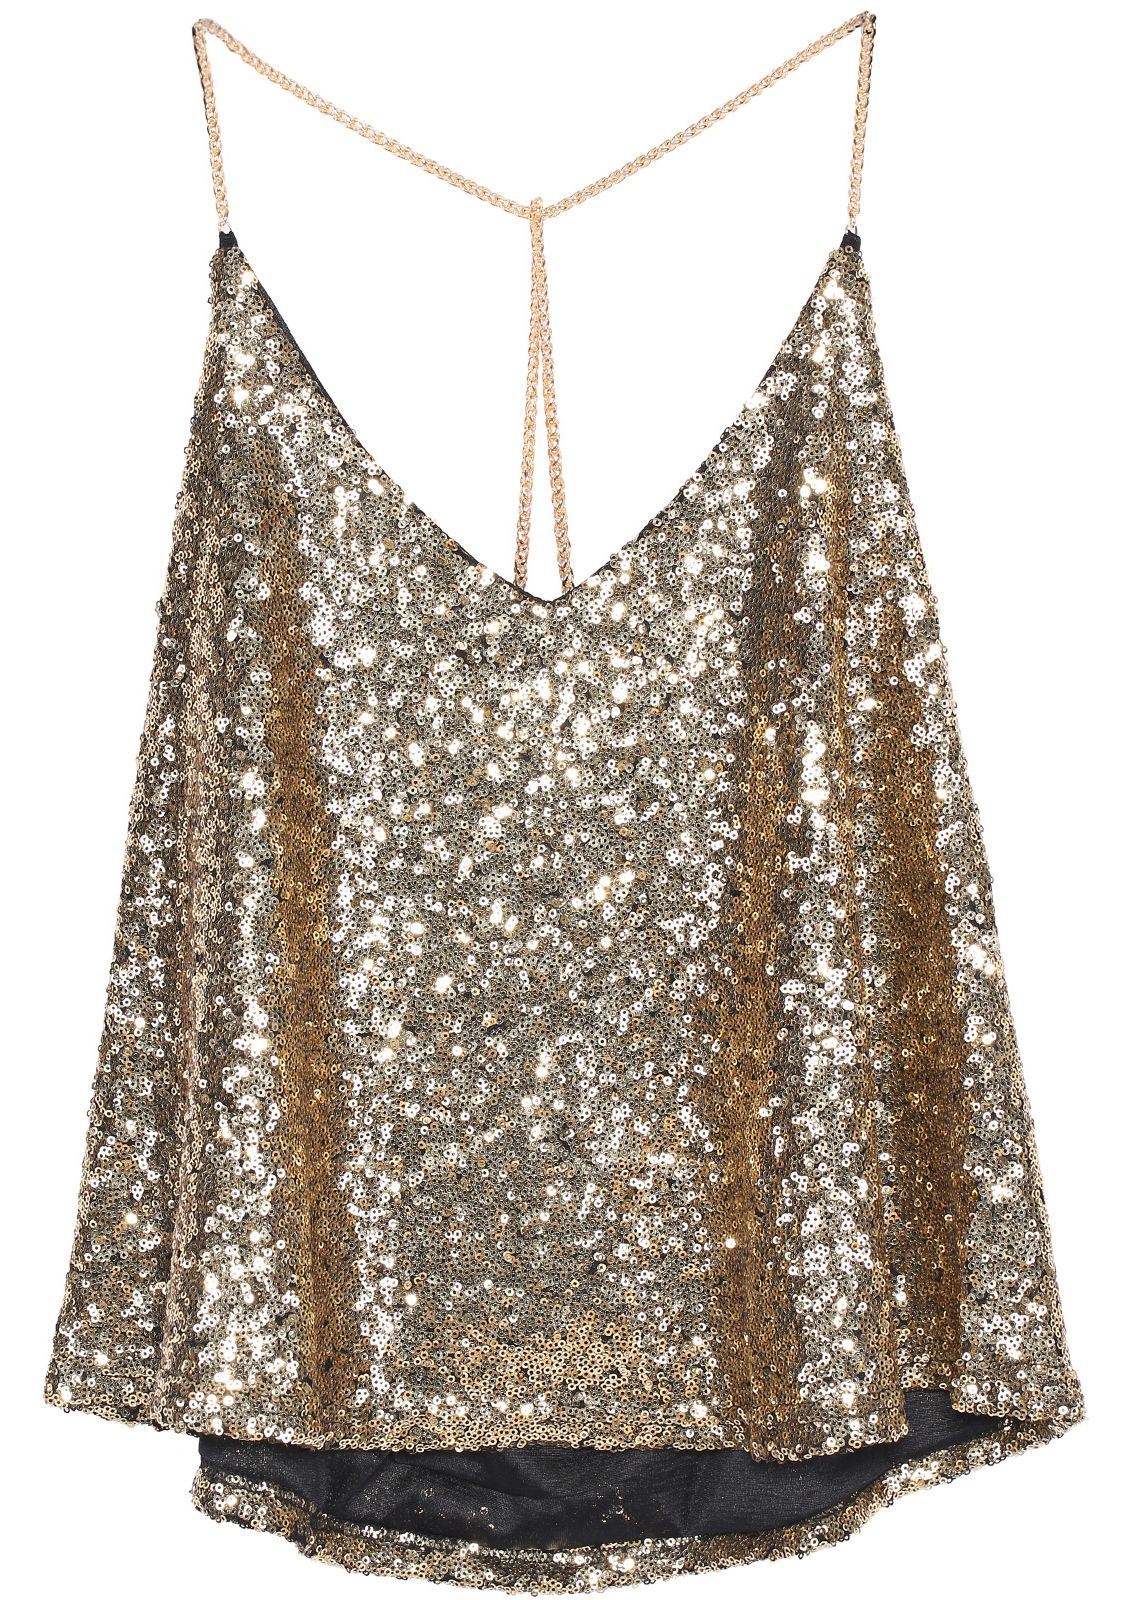 d788f354 Shop Gold Criss Cross Sequined Cami Top online. SheIn offers Gold Criss  Cross Sequined Cami Top & more to fit your fashionable needs.